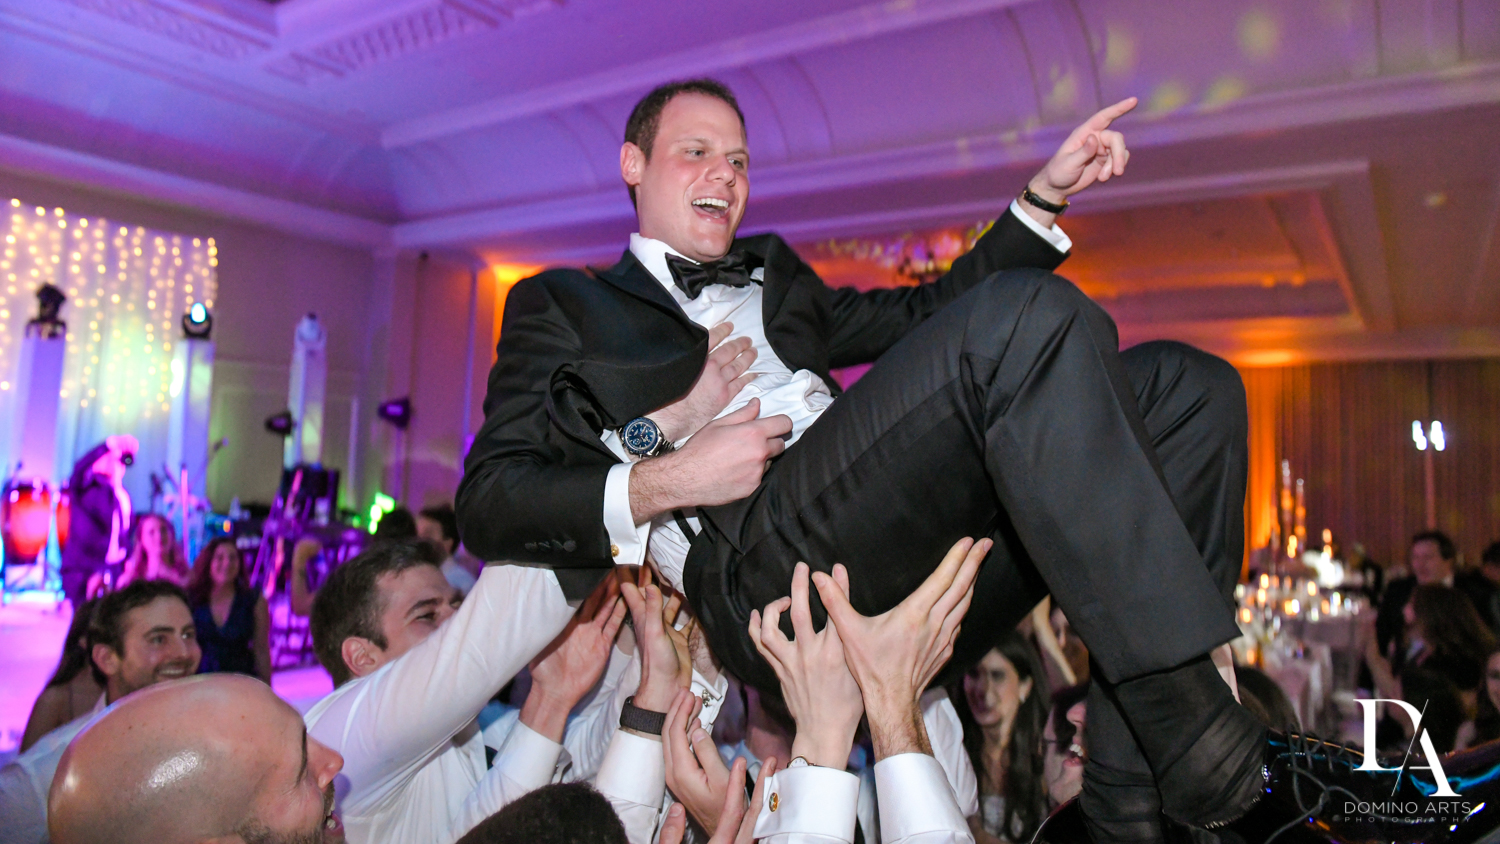 crowd surfing groom at A Ritz Carlton Wedding in Key Biscayne by Domino Arts Photography